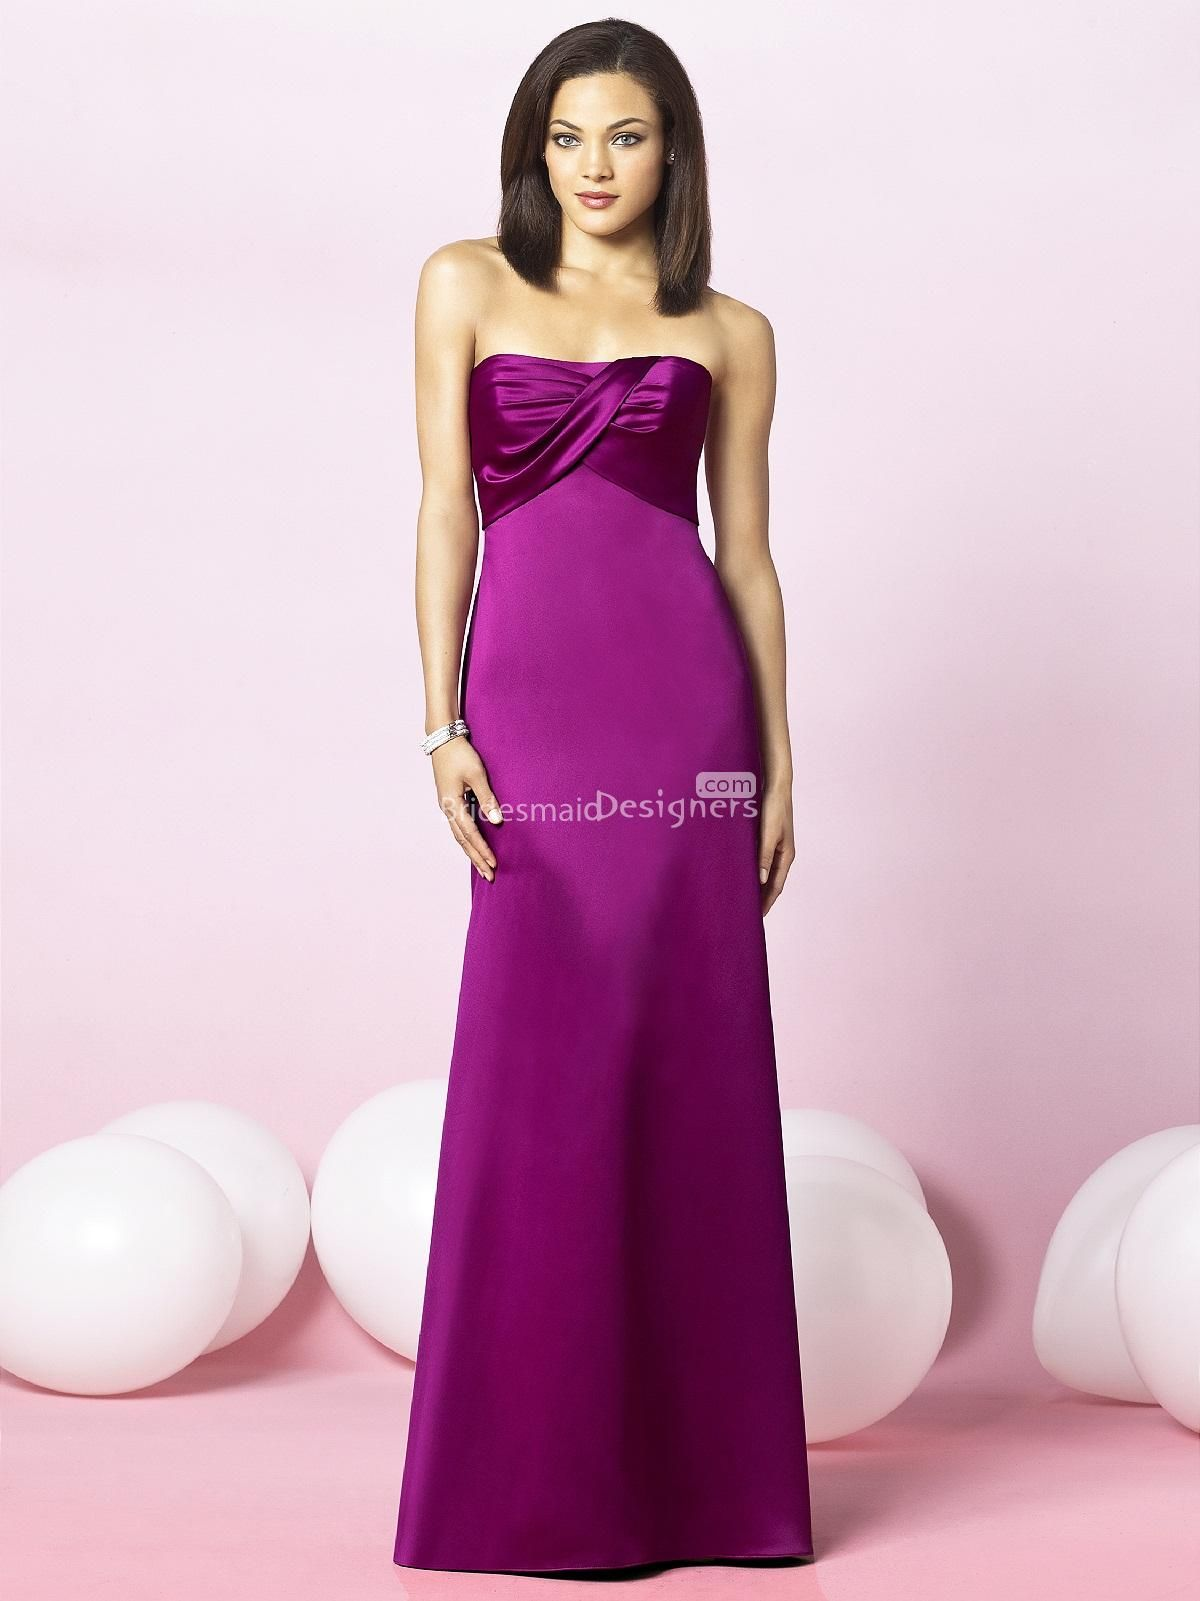 Modern wedding dresses for young: Red violet bridesmaid dresses